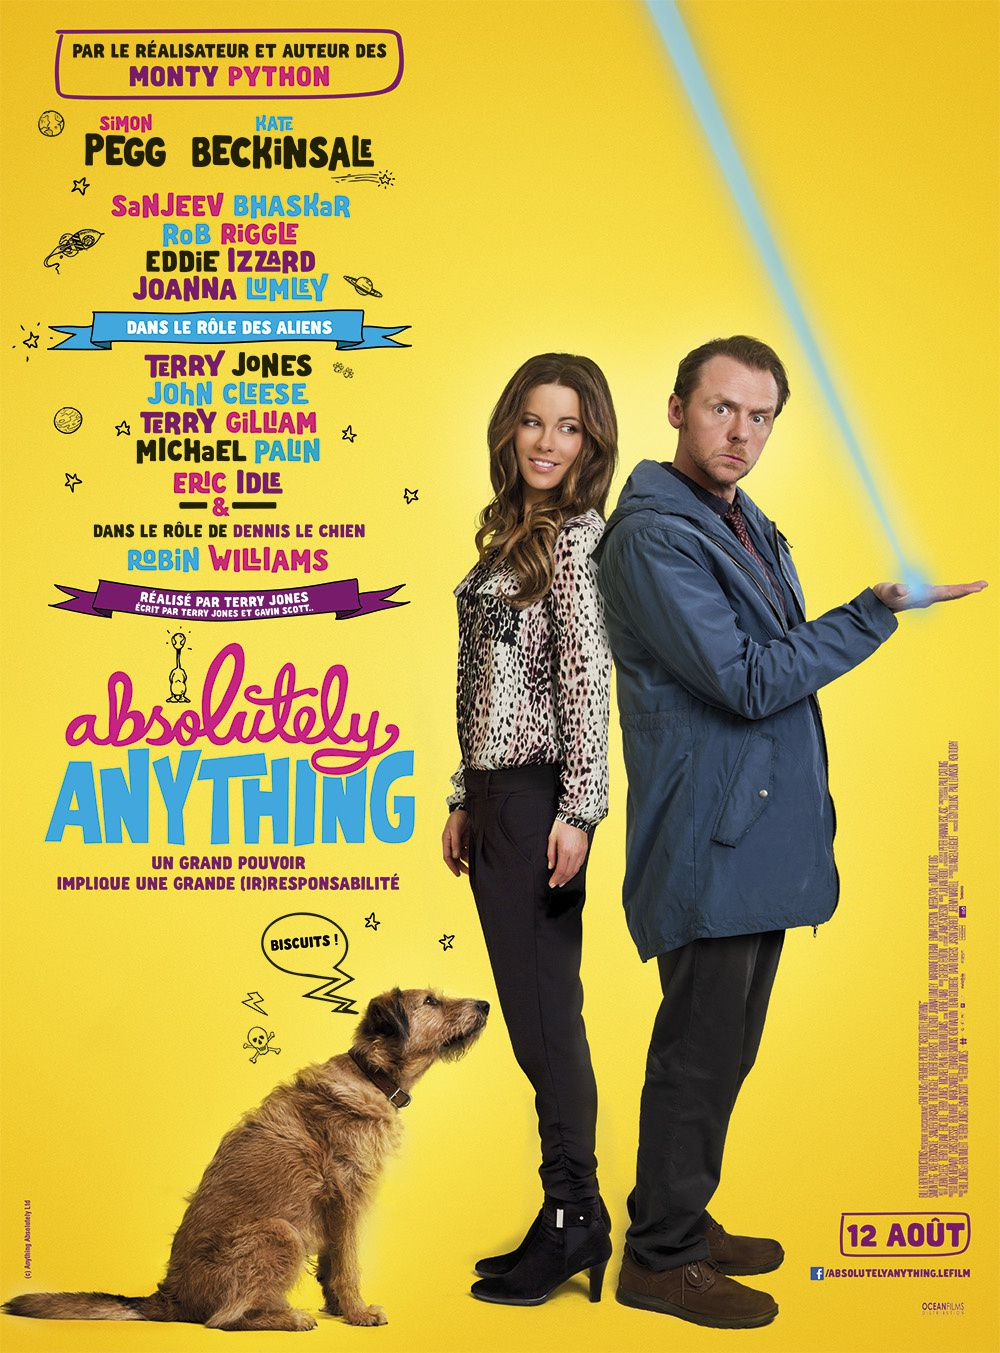 Absolutely Anything : ça manque de chien